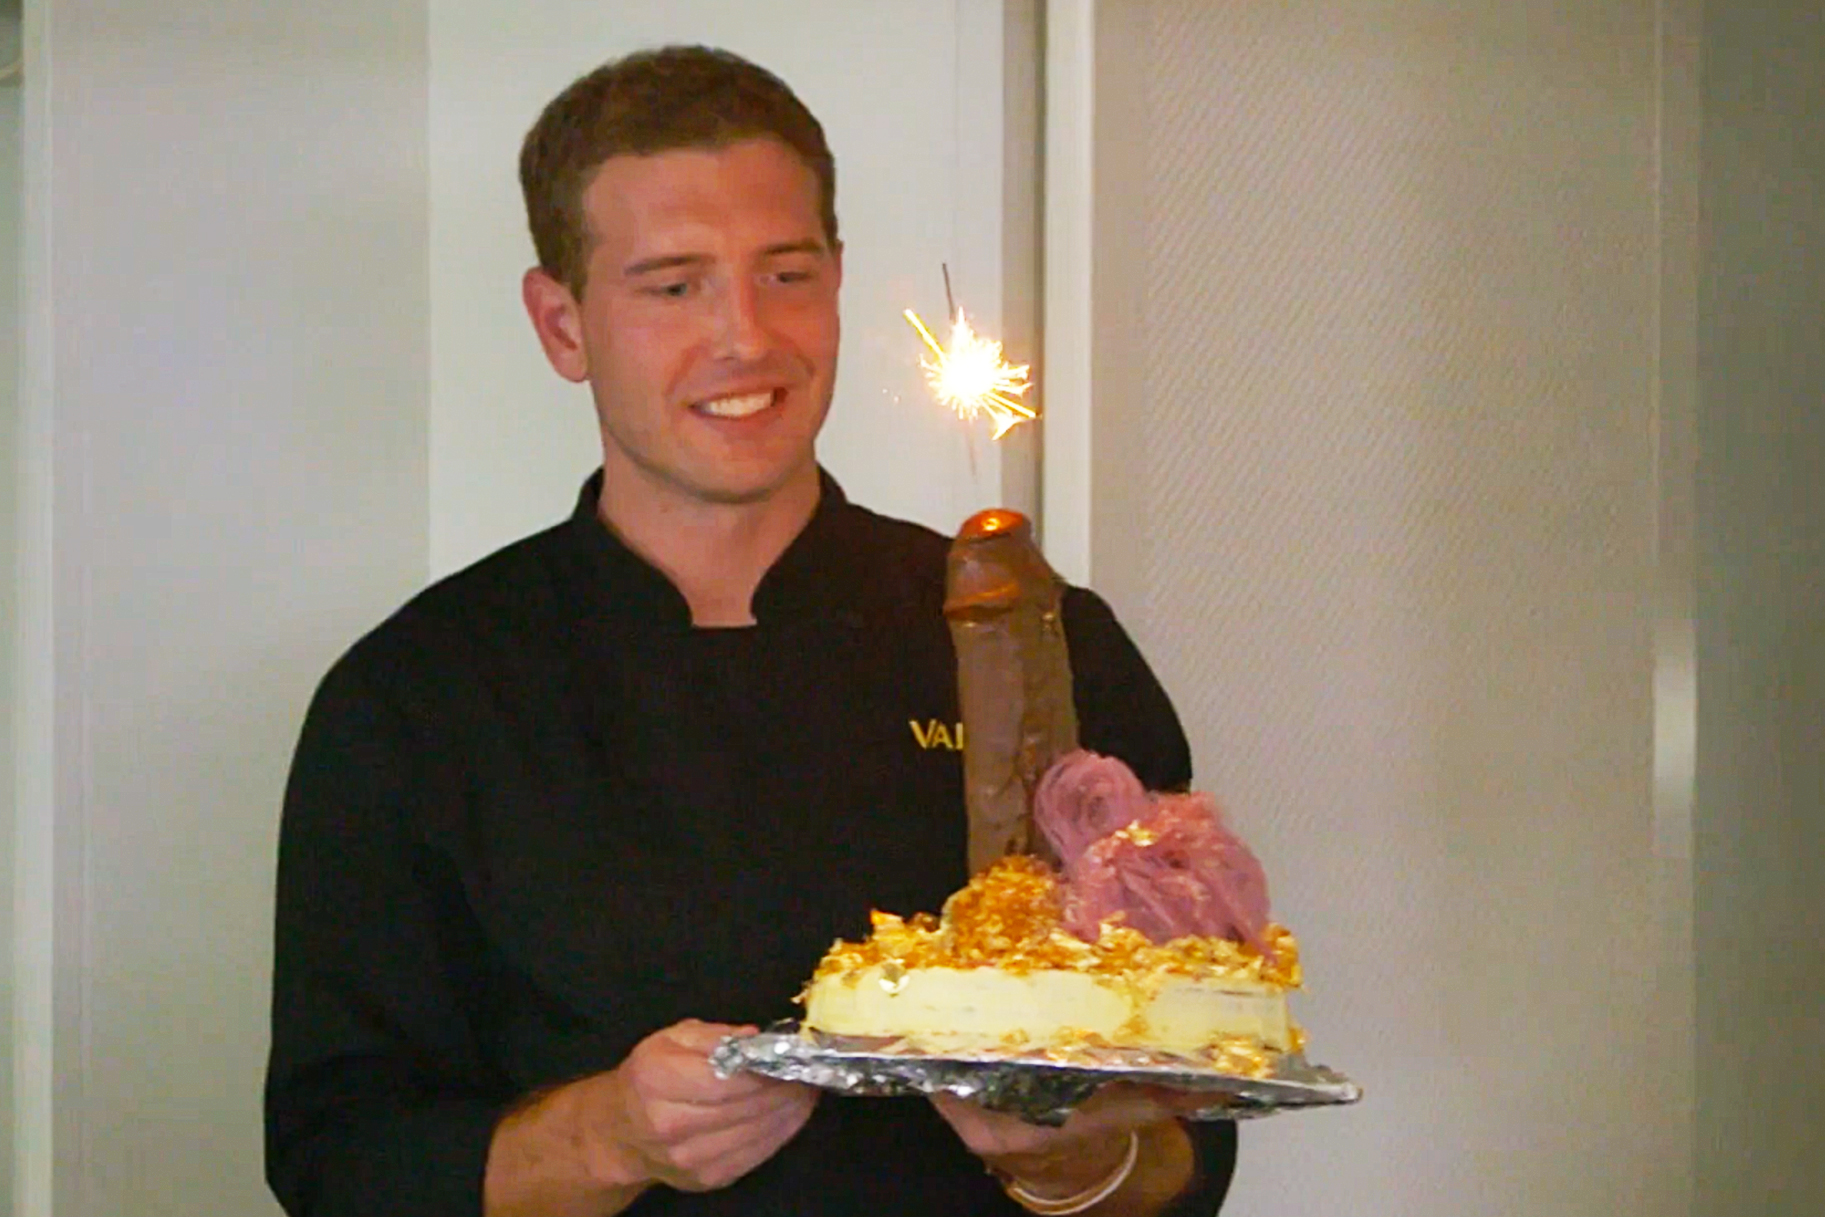 The Below Deck Crew Talks About Chef Kevins Penis Cake